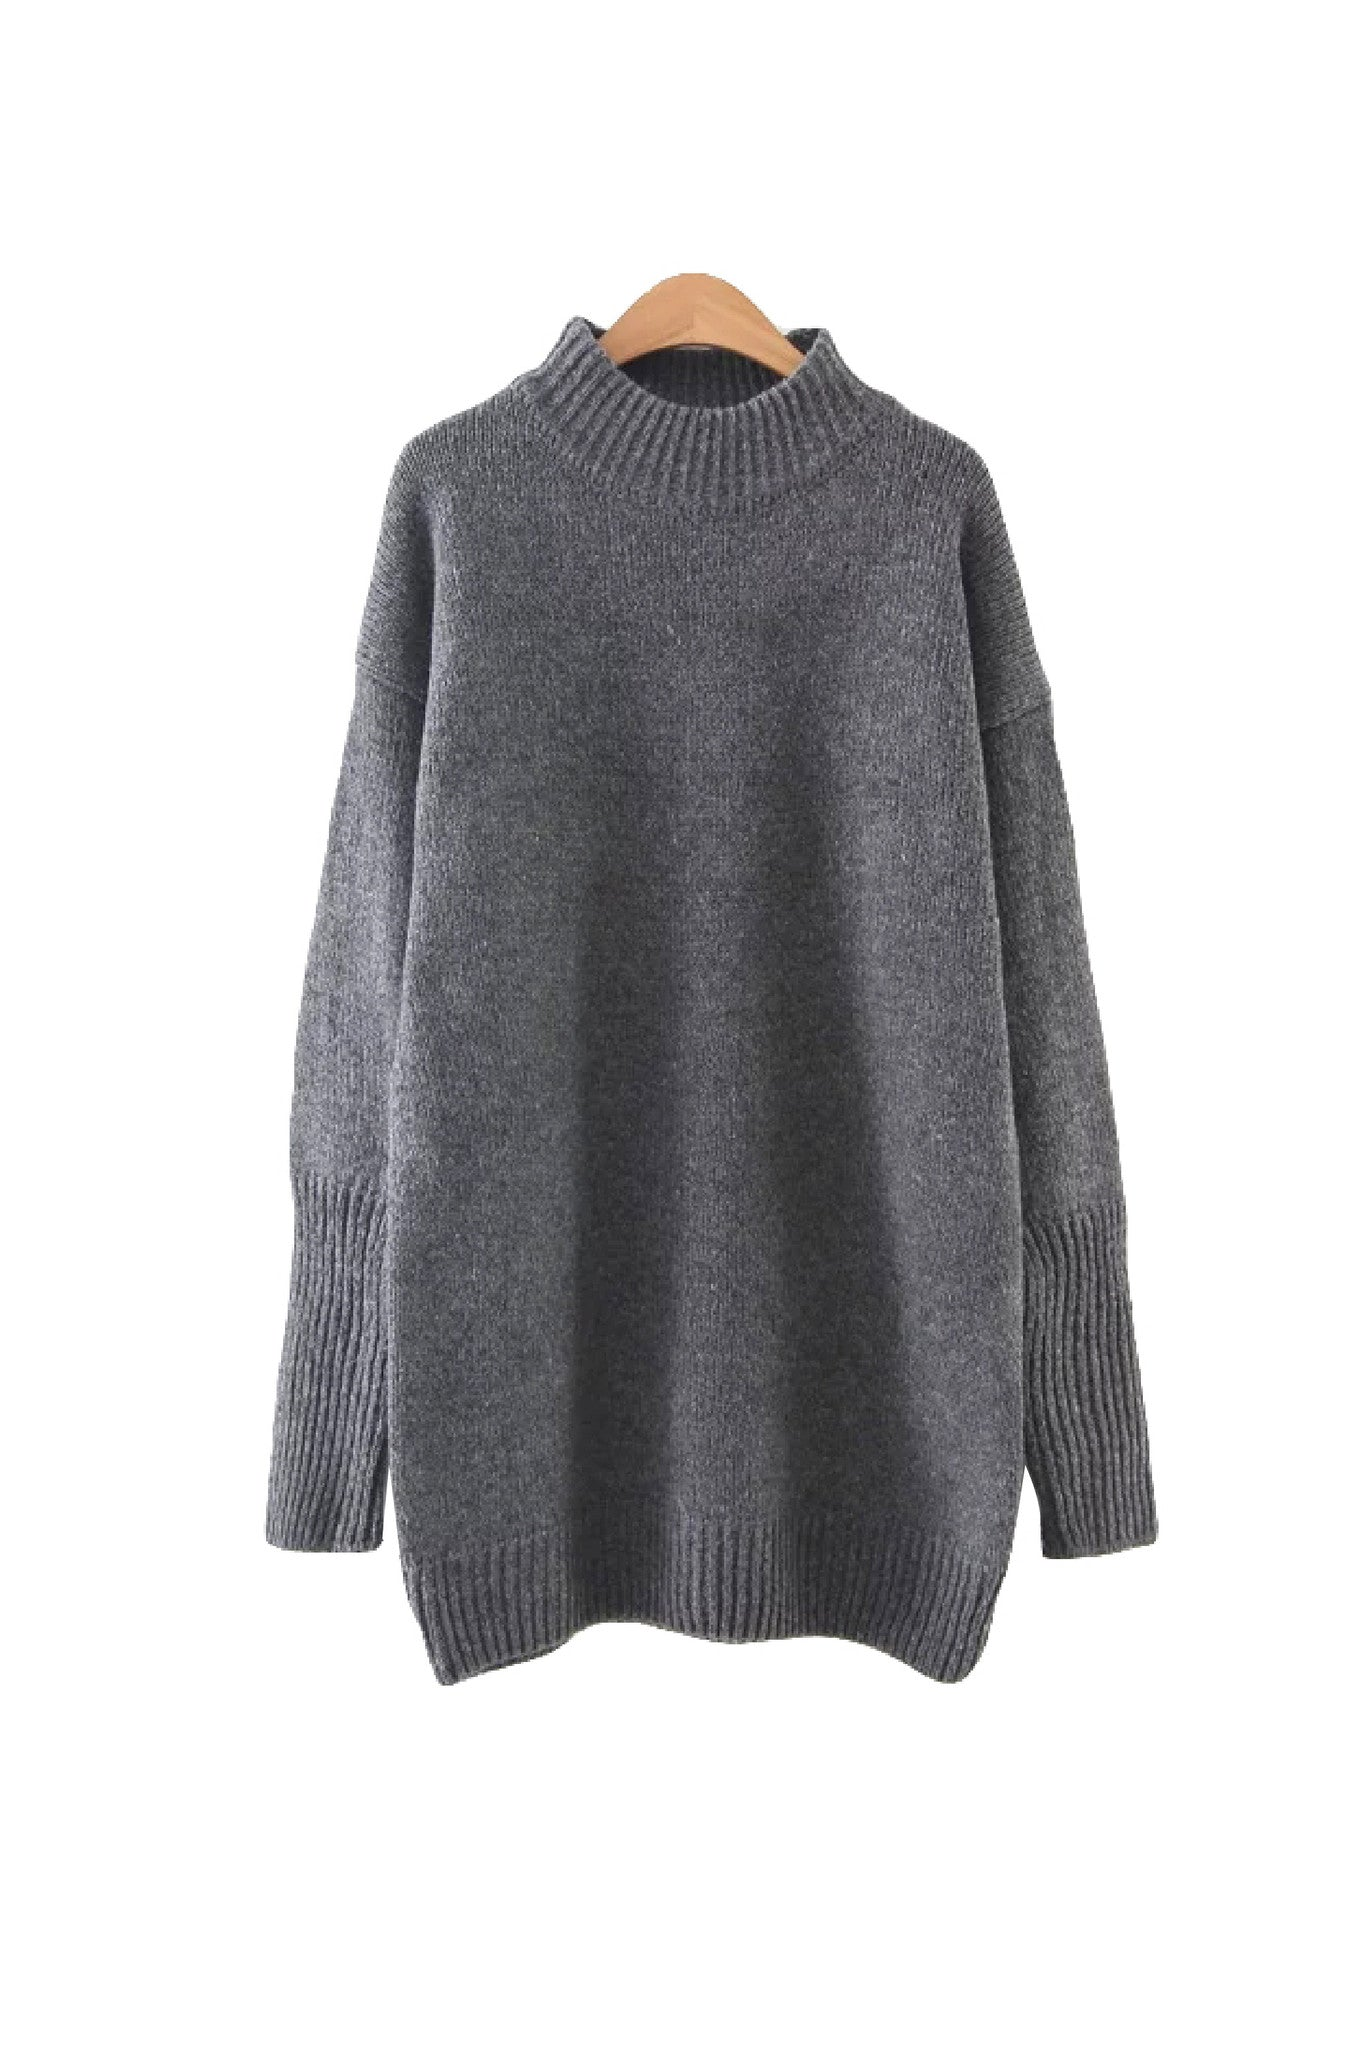 'Nevaeh' Textured Knit Crewneck Pullover Dark Gray from Goodnight Macaroon